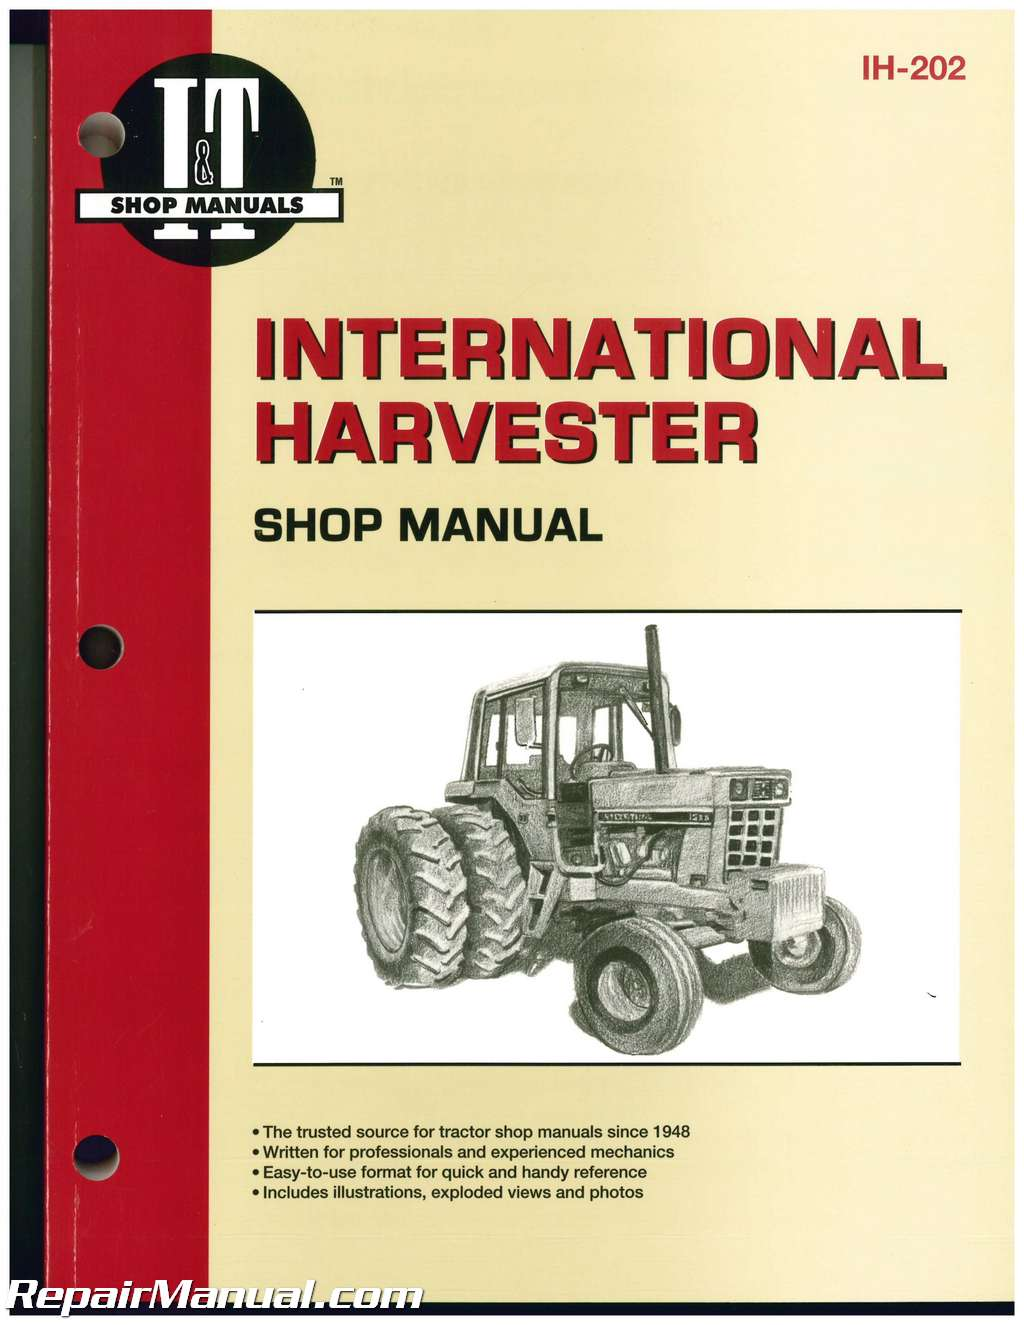 Wiring Diagram For 666 Ih Tractor Download Diagrams International Harvester Farmall 544 656 686 Hydro 70 86 Rh Repairmanual Com Cub Electrical